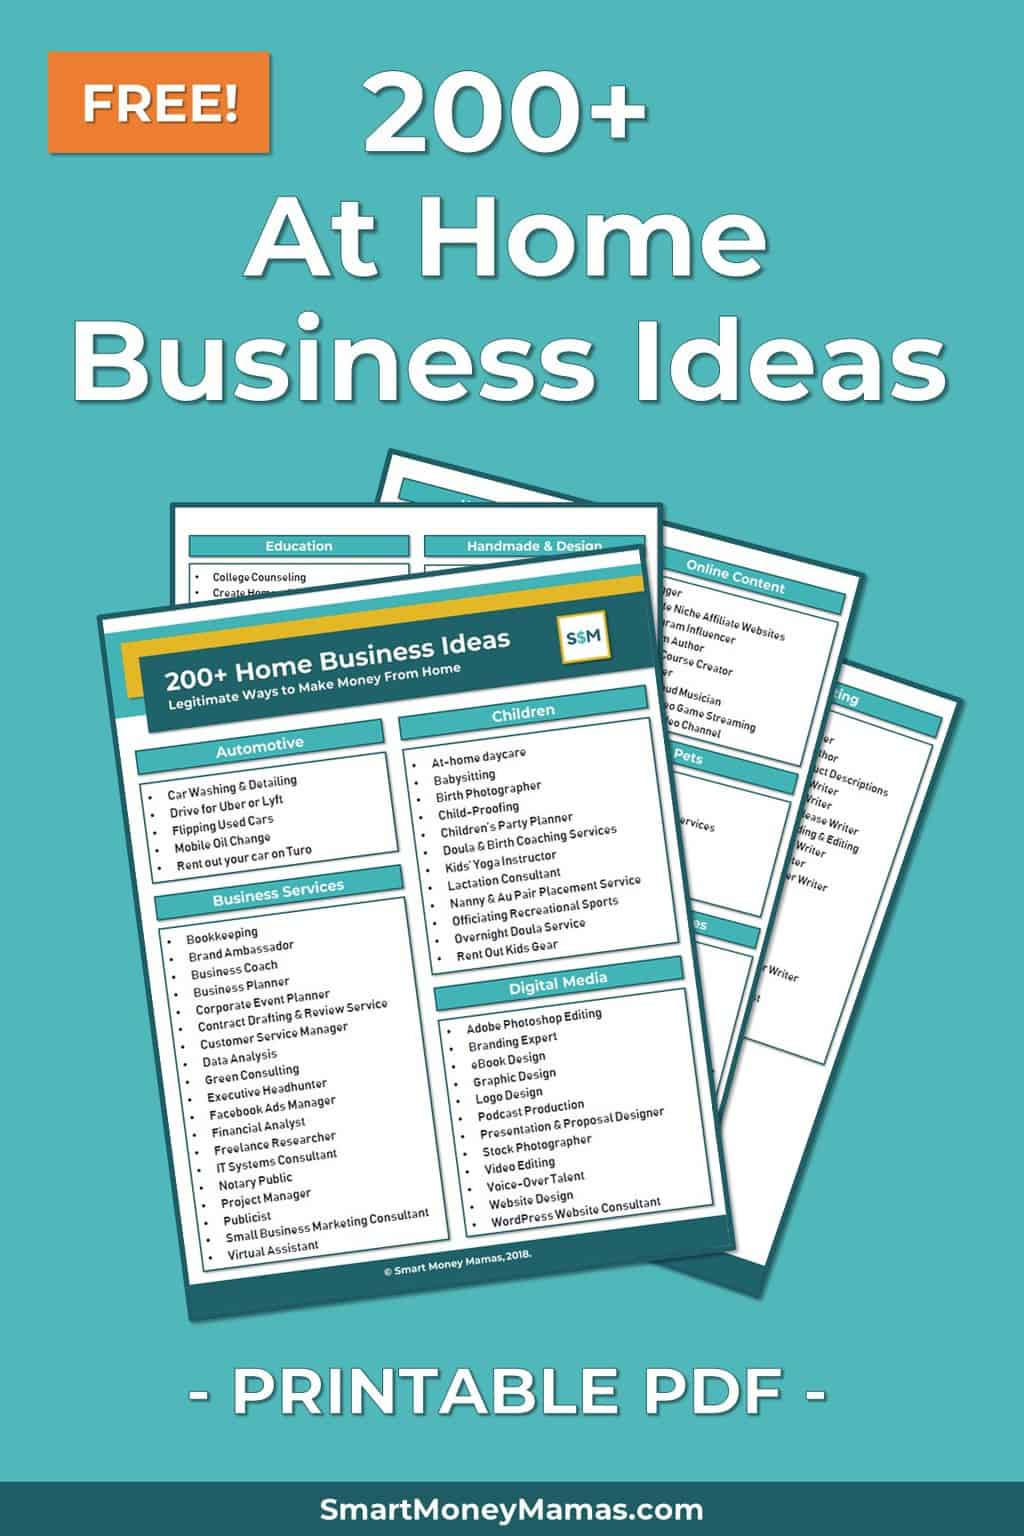 200+ At-Home Business Ideas [FREE Download!]